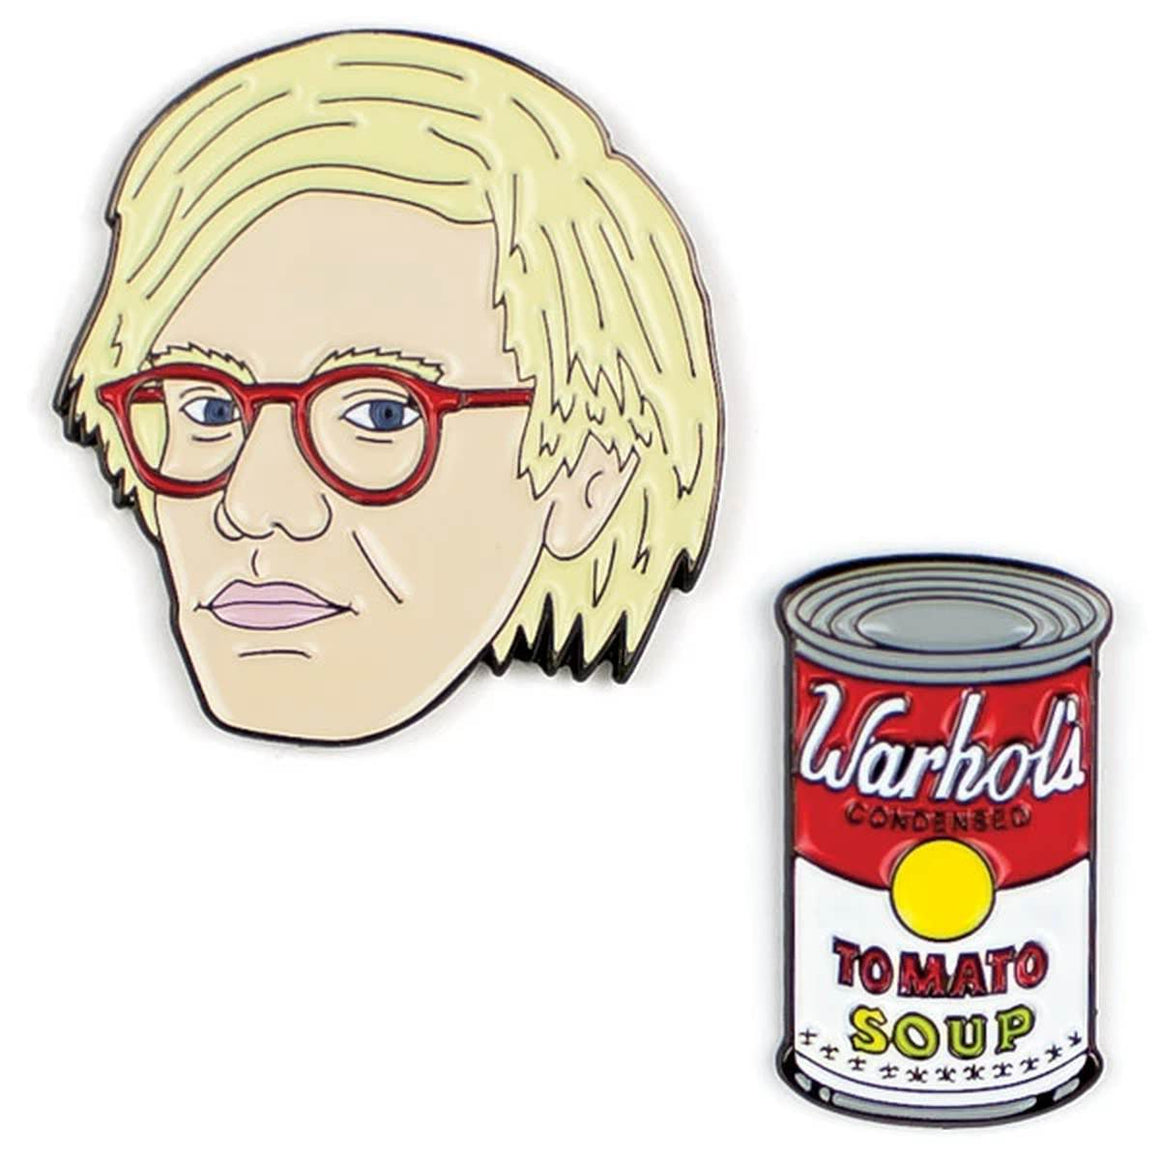 A set of two Enamel pins. One is a portrait of Andy Warhol, the other a Tomato Soup Can